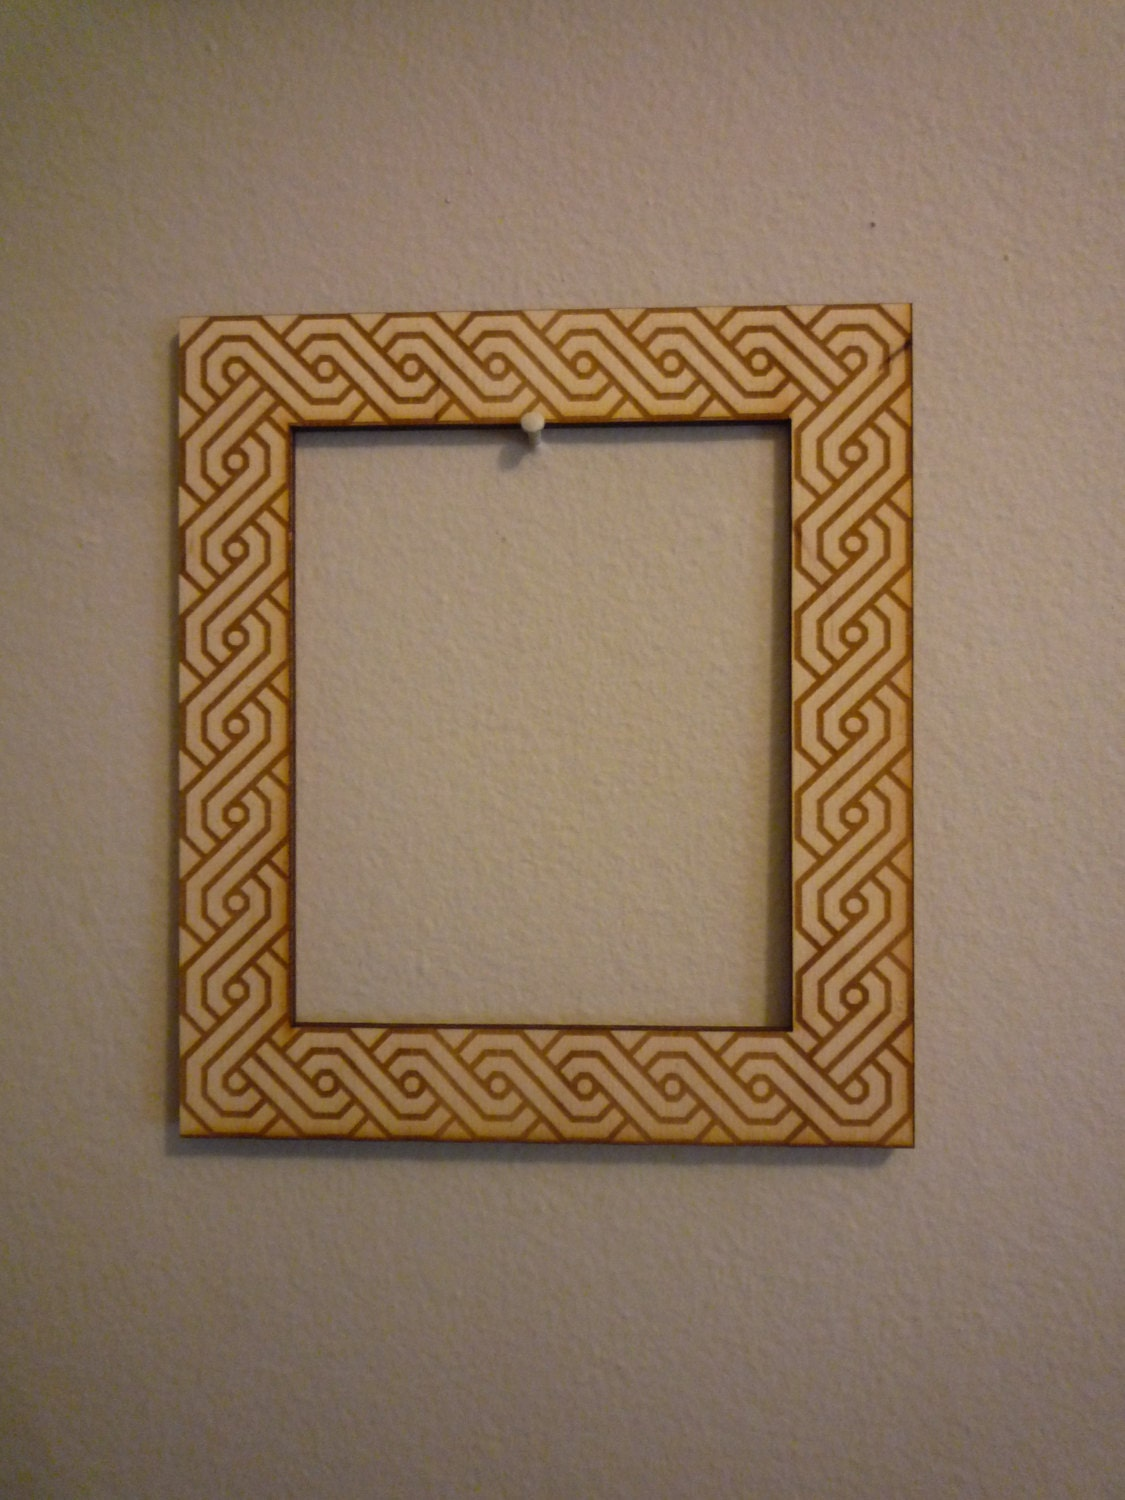 Whisky Frames  Say hello to whisky frames